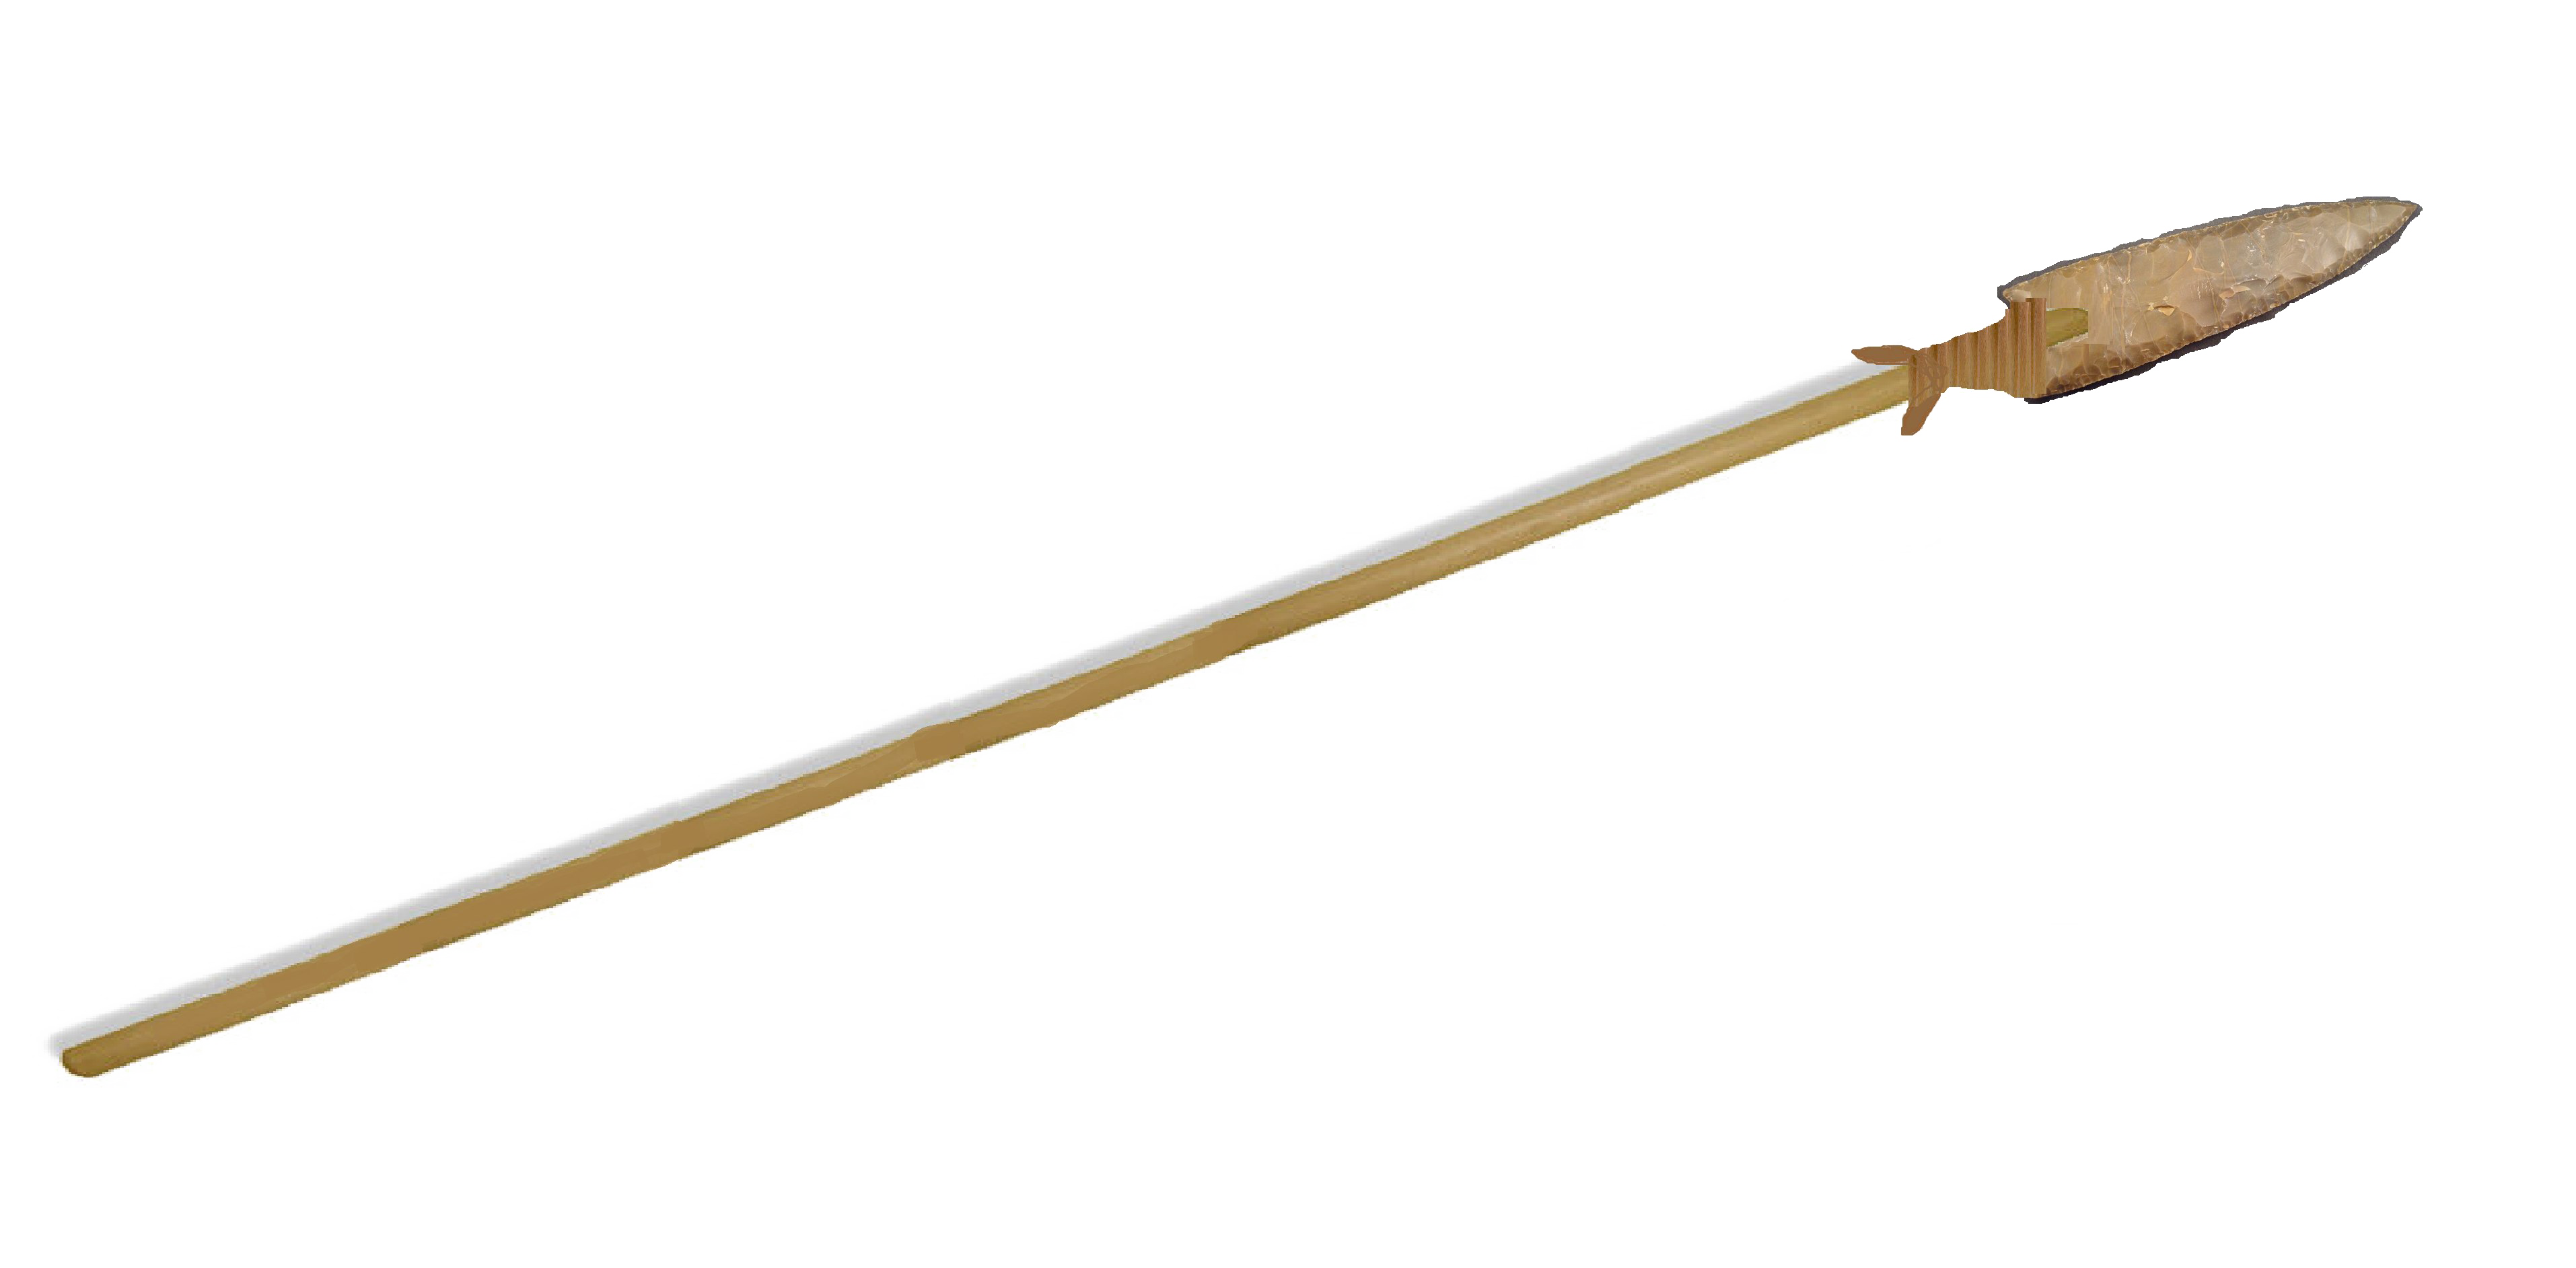 Medieval spear png. Free download arts